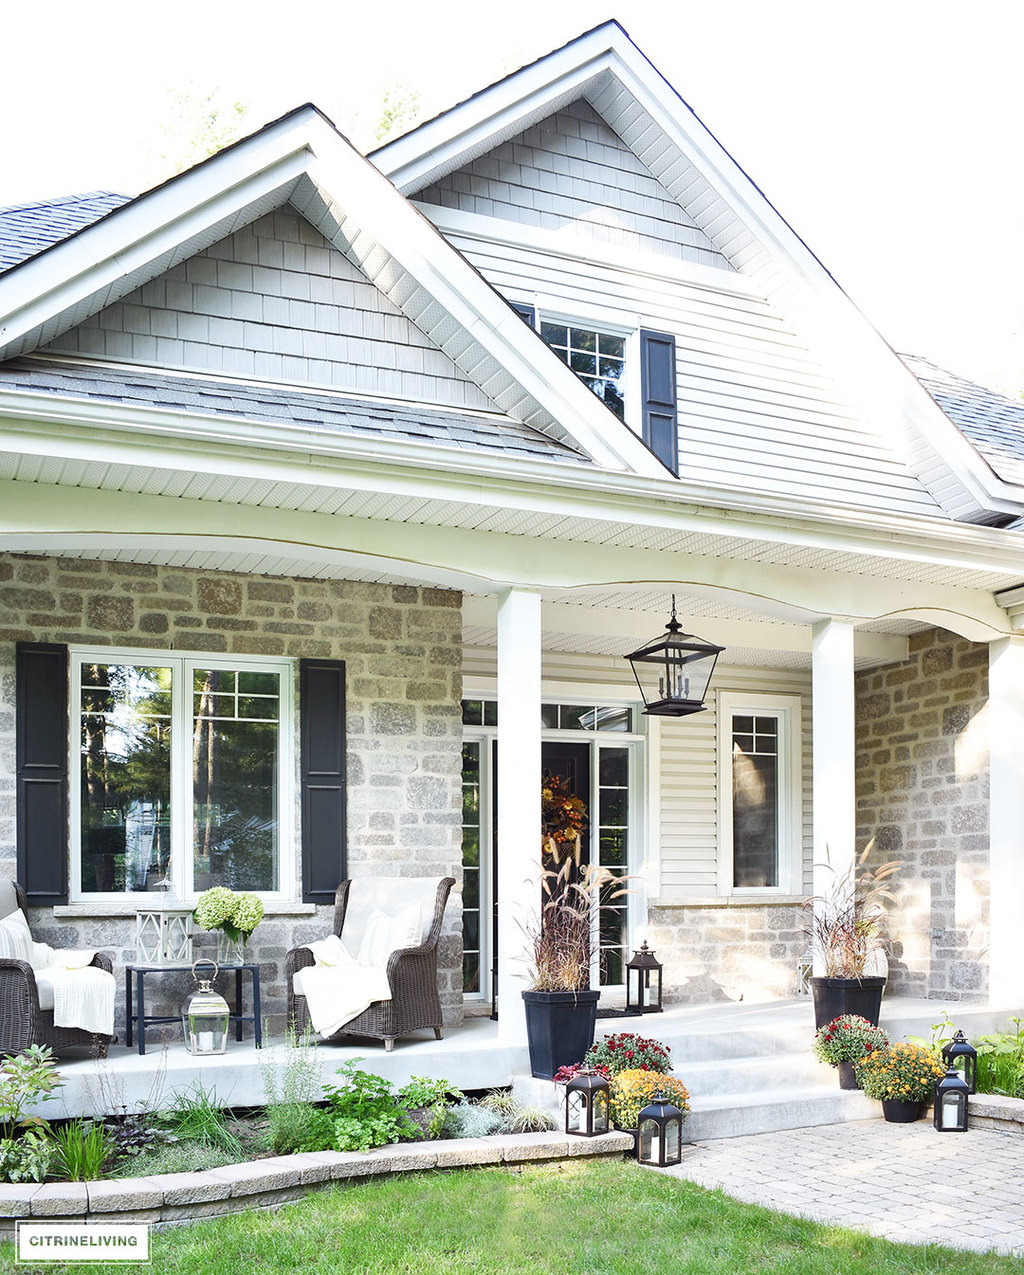 A simple and elegant front porch decorated for Fall with seasonal flowers in autumnal colors, and a sophisticated overscale wreath for the front door.